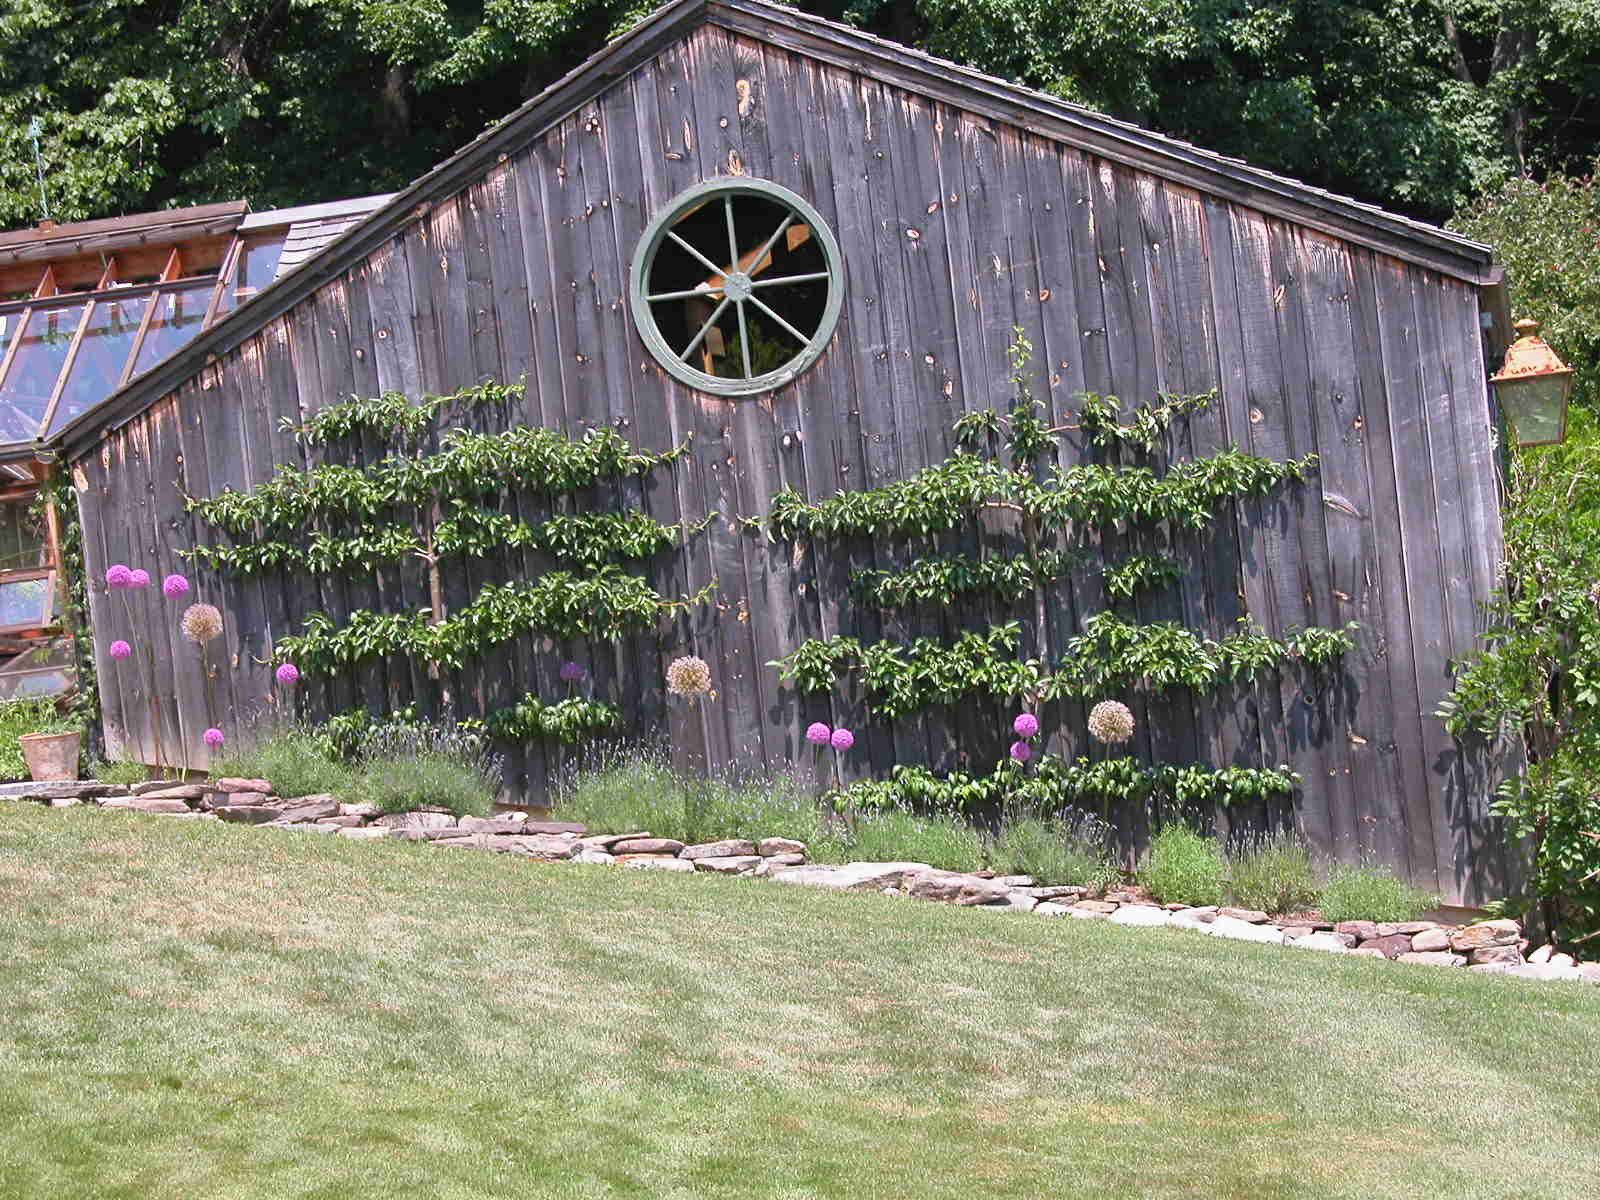 Fruit trees growing near a shed.